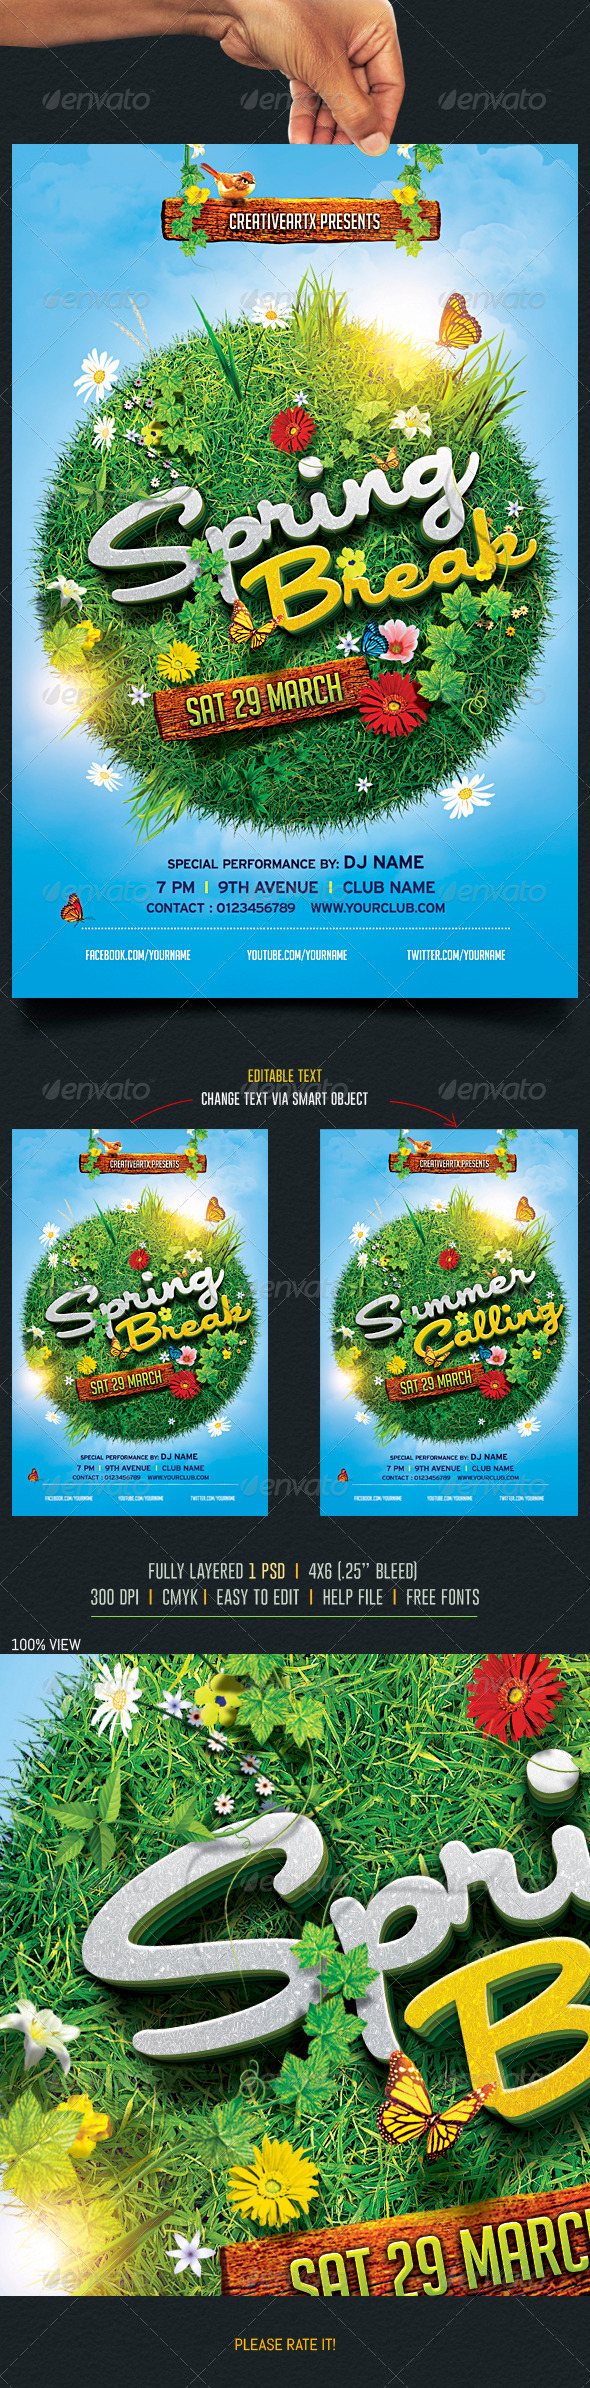 Spring Break / Summer Party Flyer 2 - Events Flyers